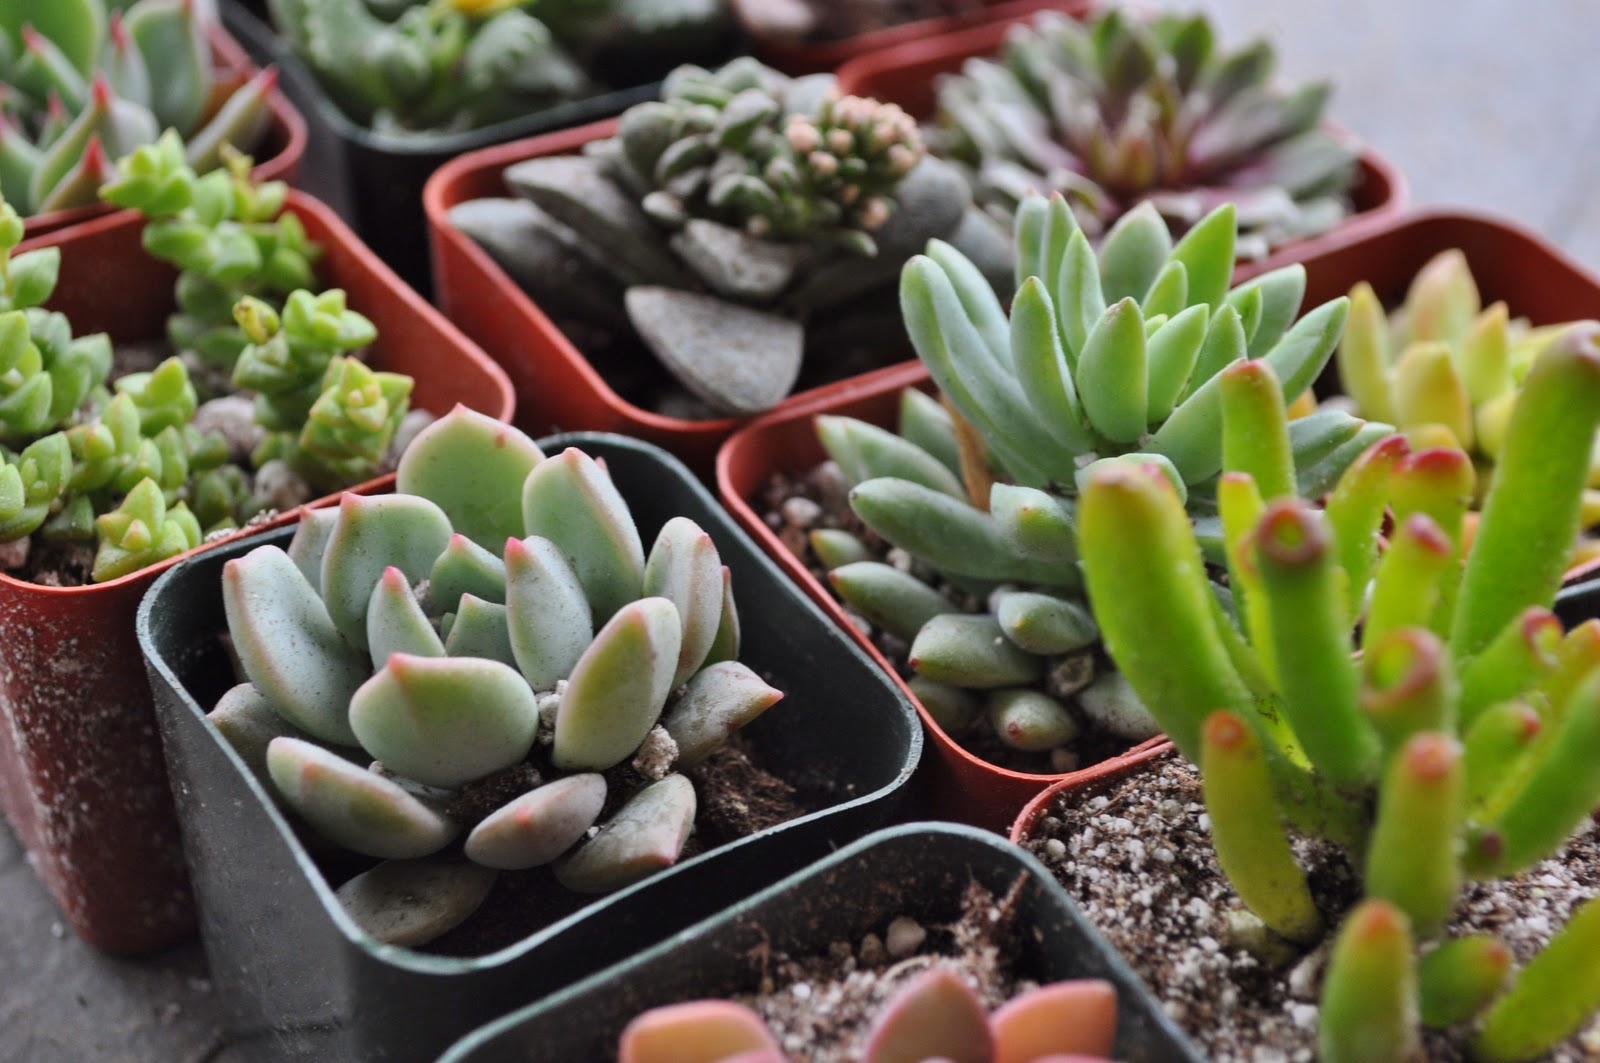 Indoor Succulents 10 Easy Tips On How To Grow Succulents The Self Sufficient Living